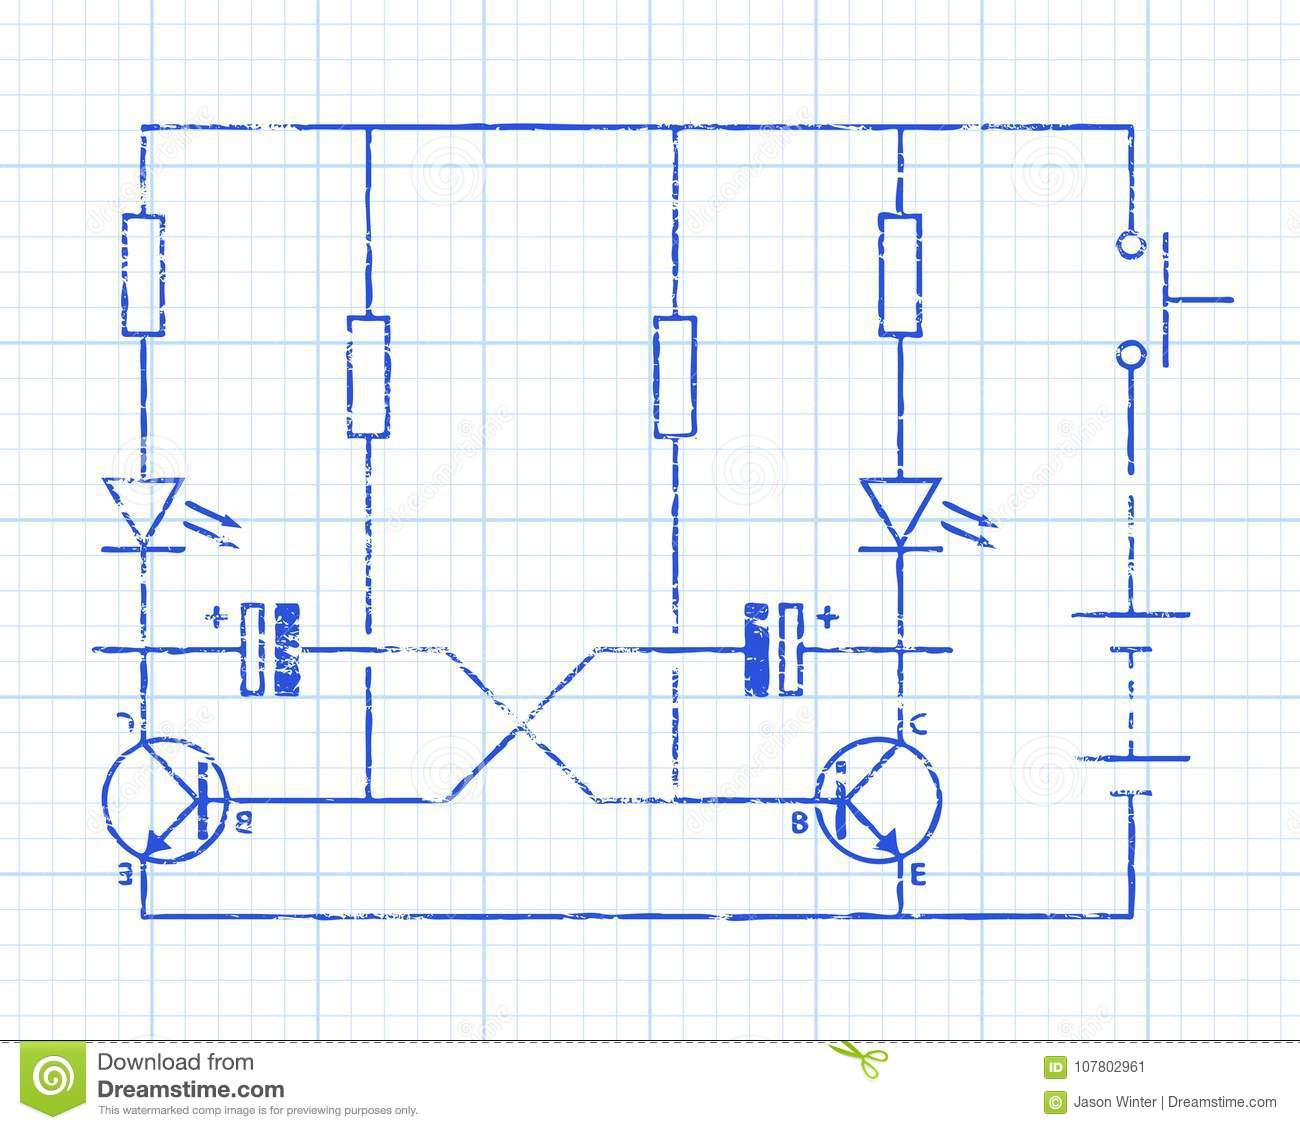 hight resolution of simple flip flop circuit hand drawn on graph paper background